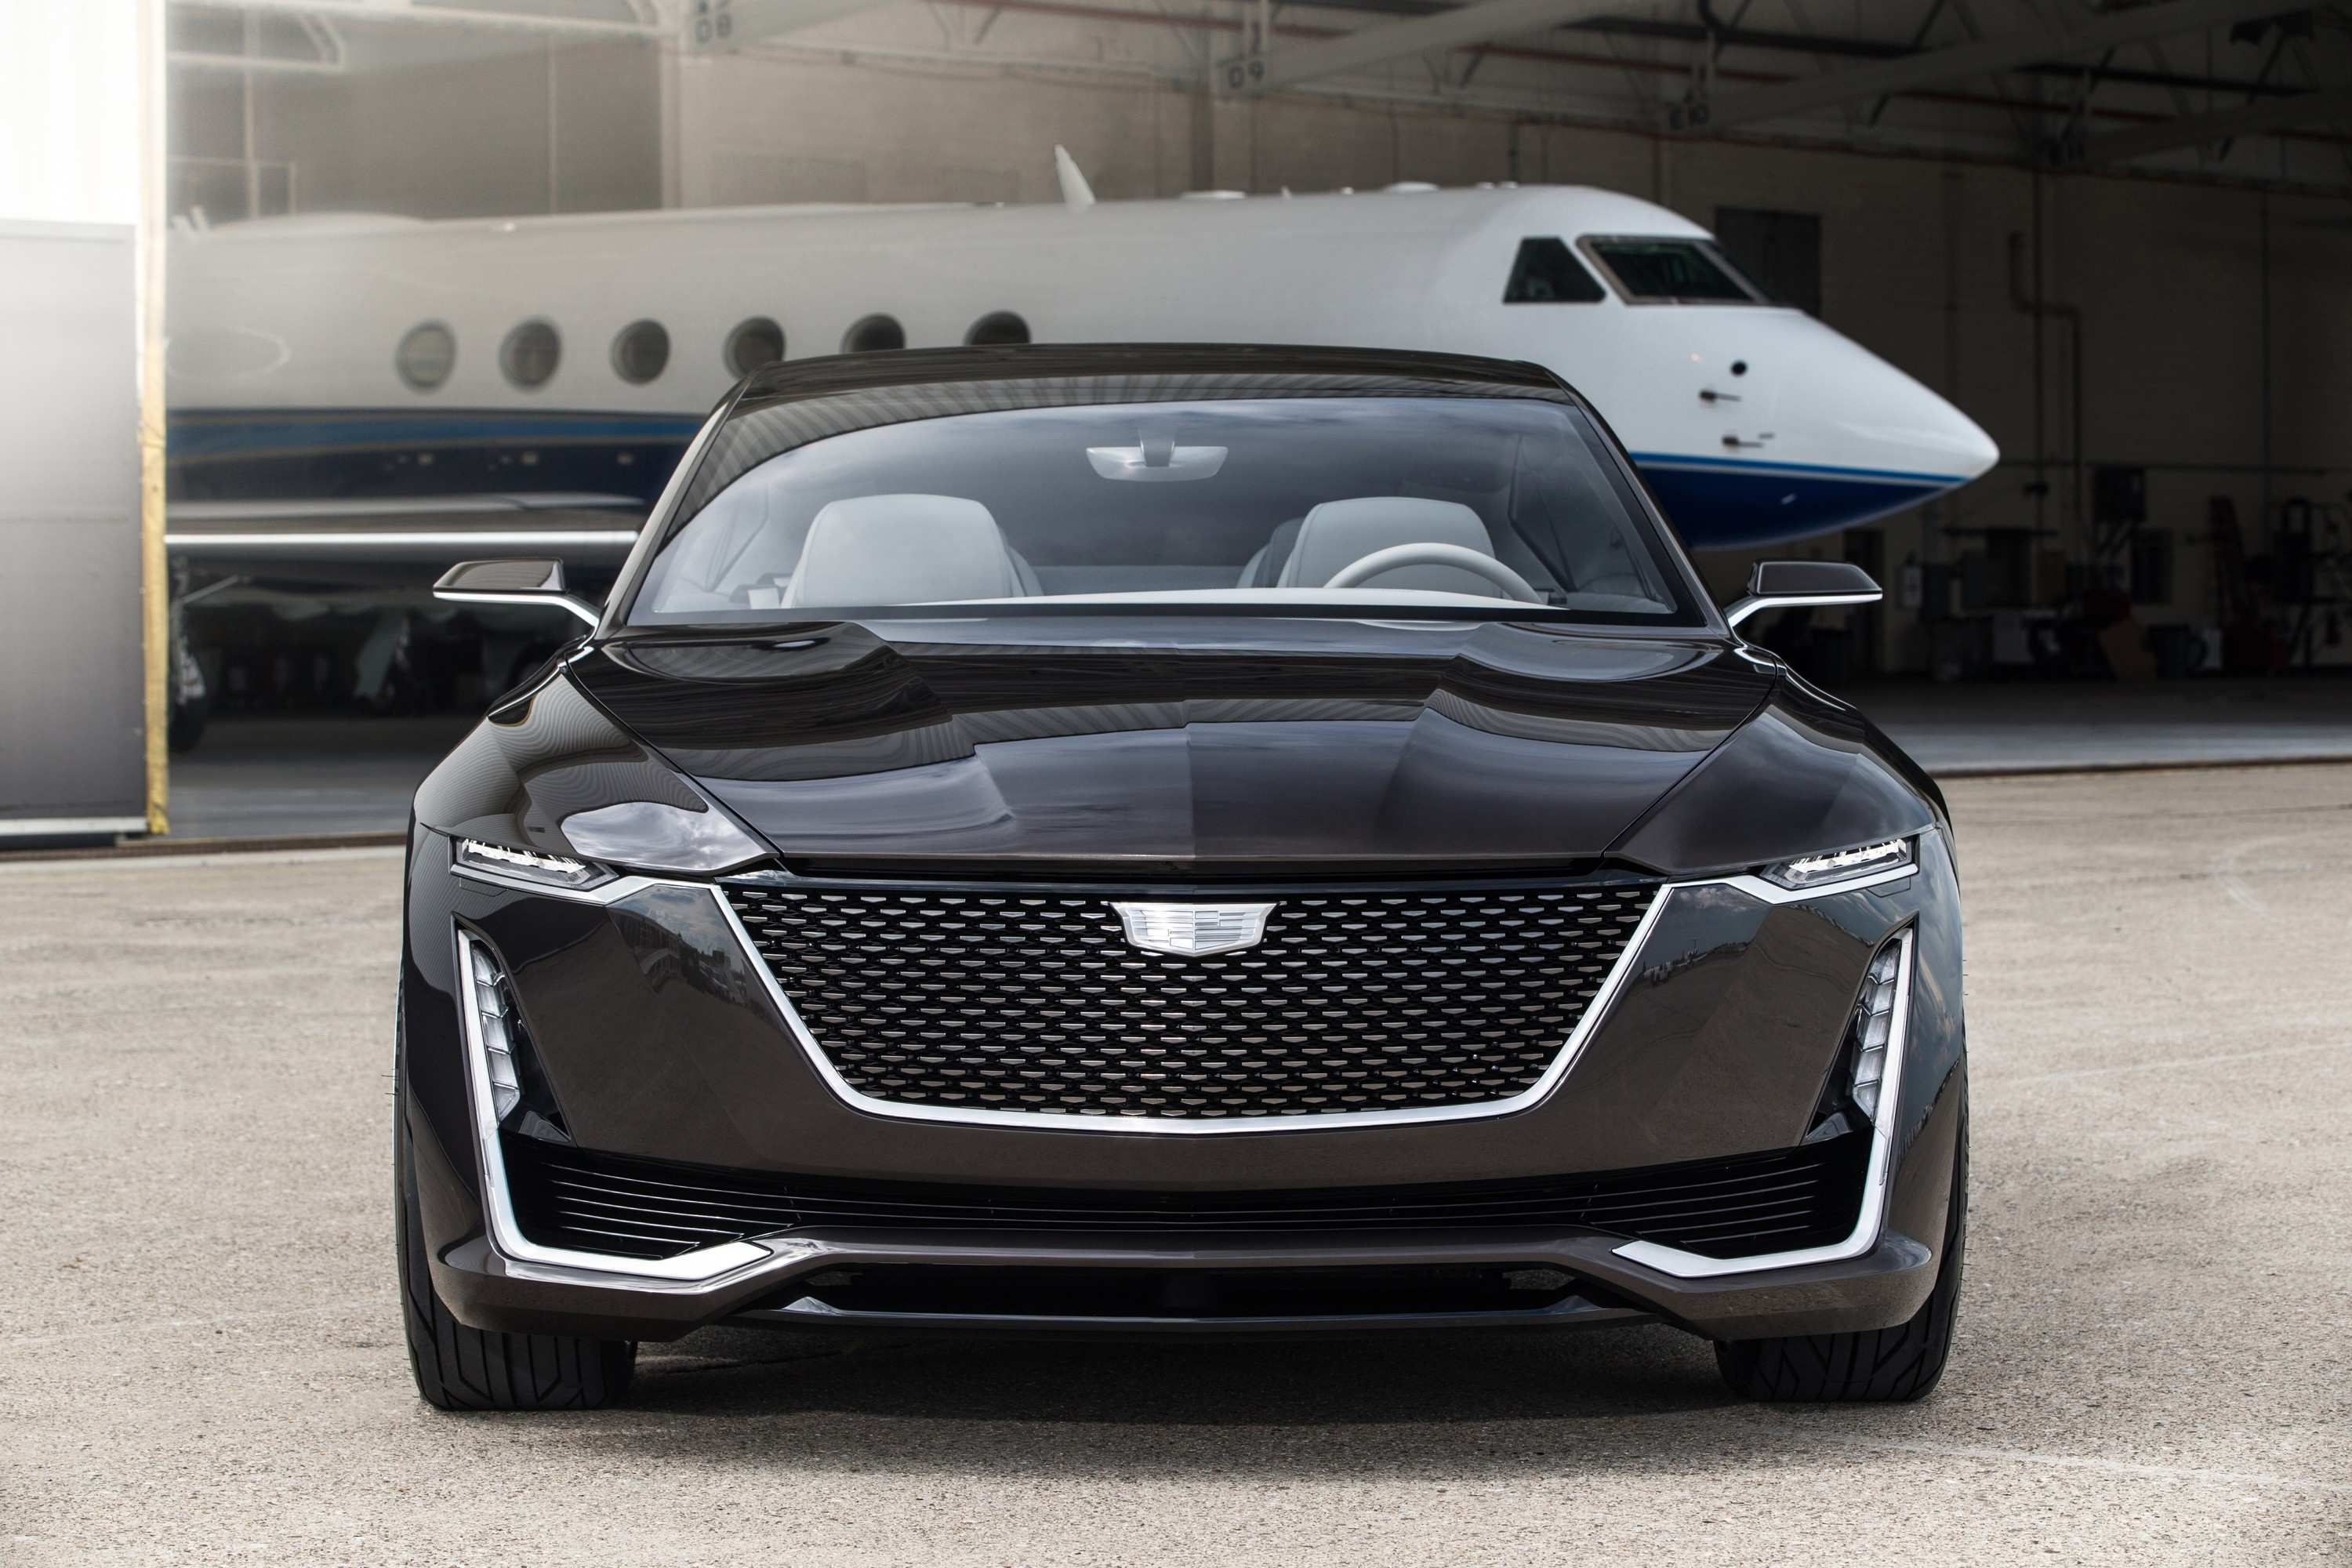 65 New Cadillac Ats V 2020 Release Date And Concept